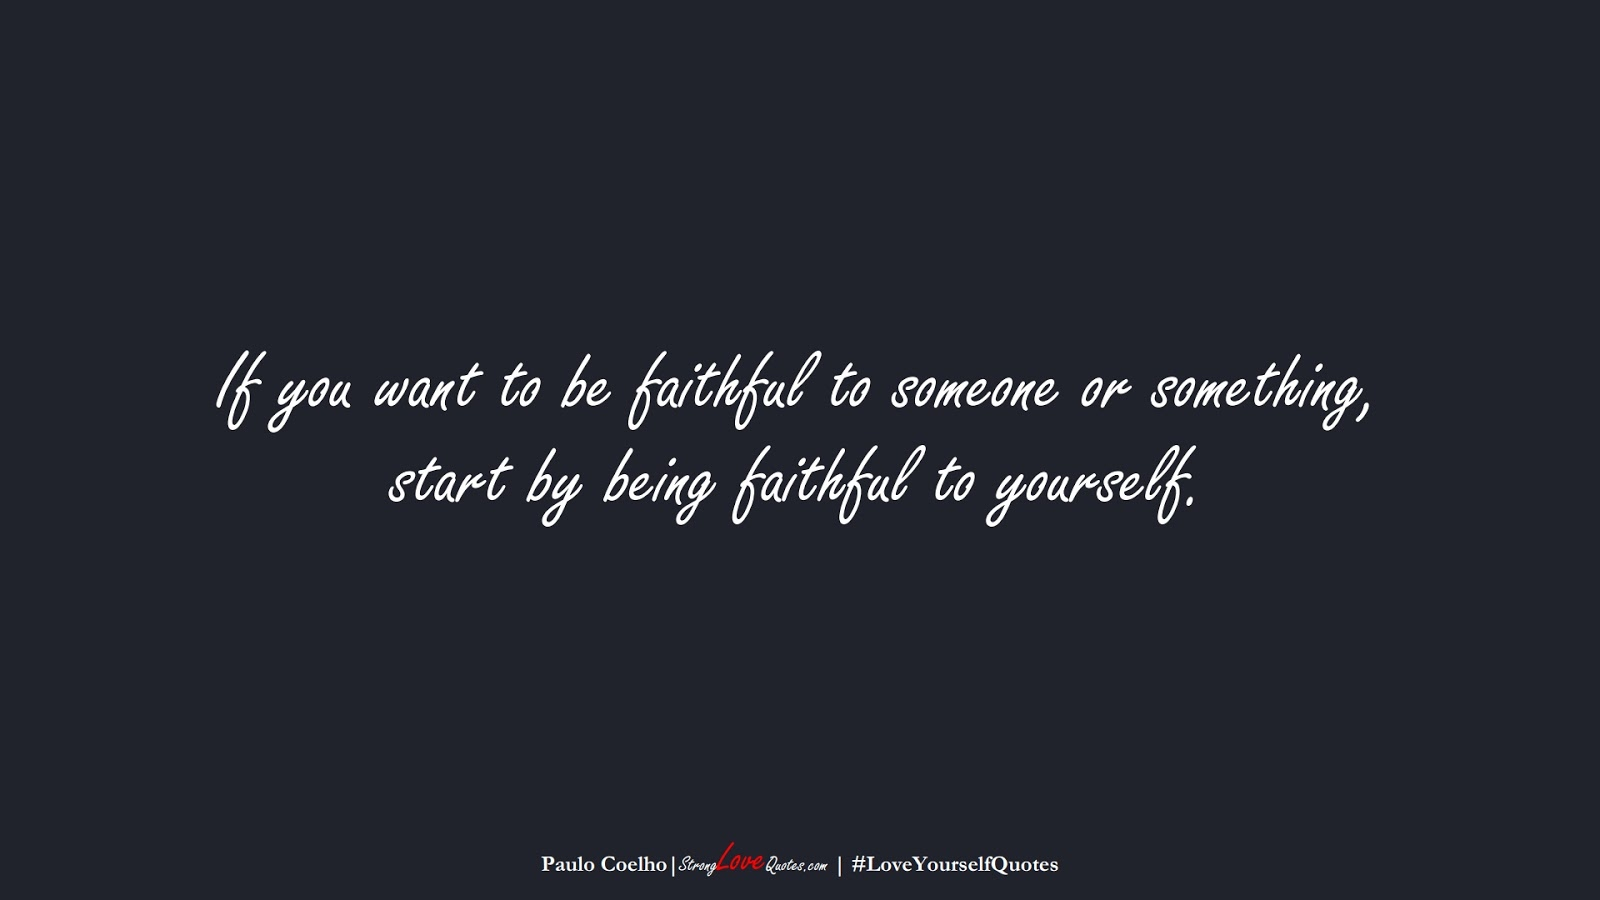 If you want to be faithful to someone or something, start by being faithful to yourself. (Paulo Coelho);  #LoveYourselfQuotes